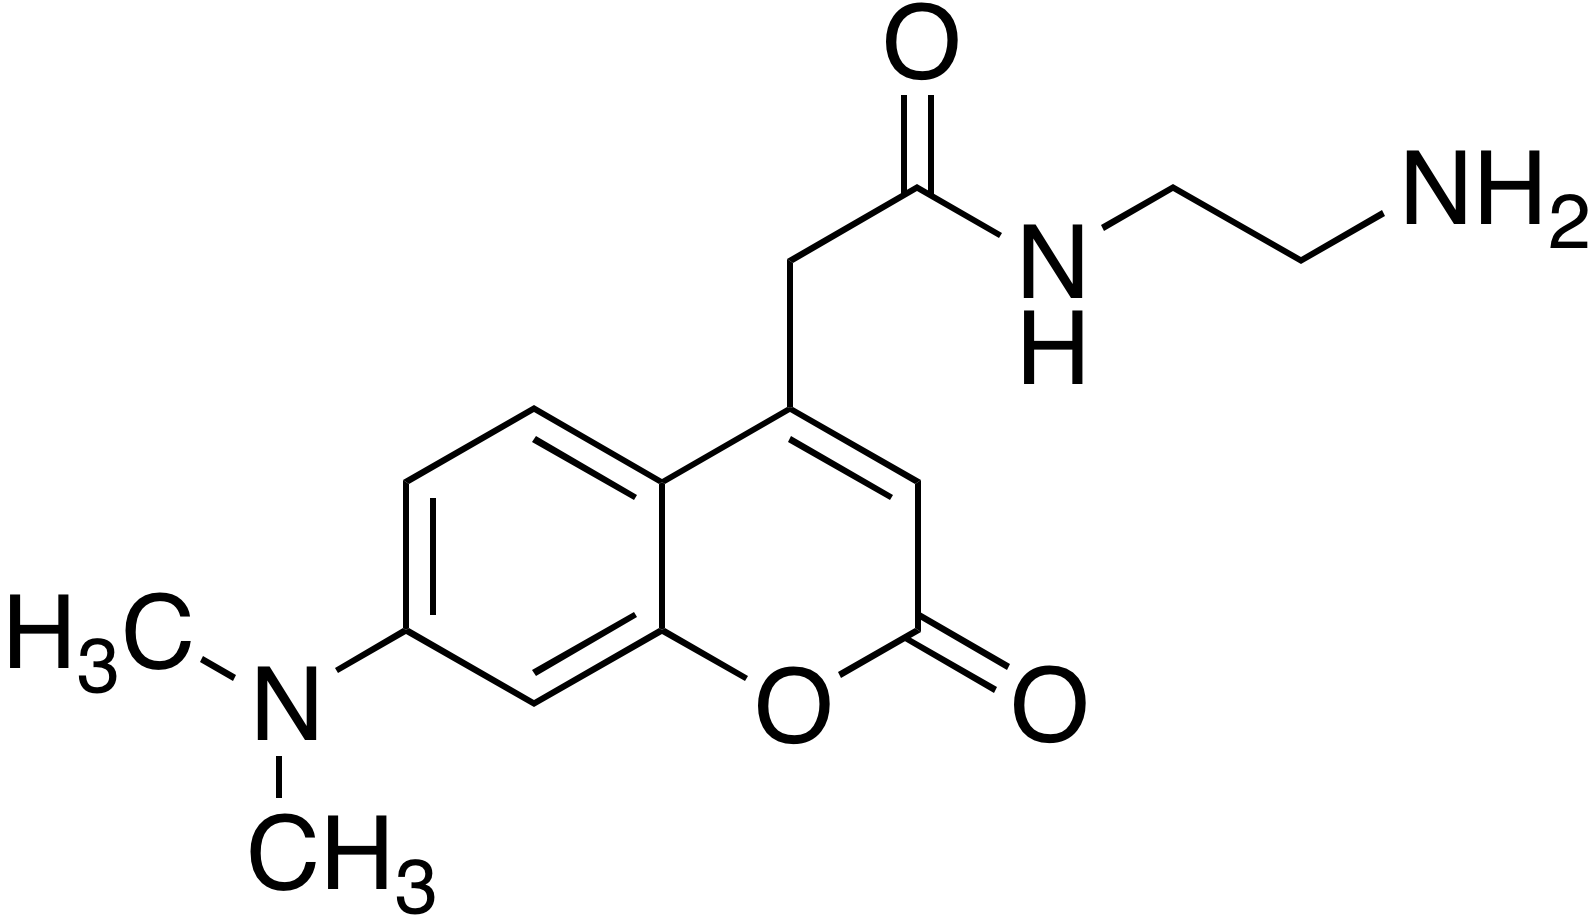 N-(2-Aminoethyl)-7-dimethylaminocoumarin-4-acetamide